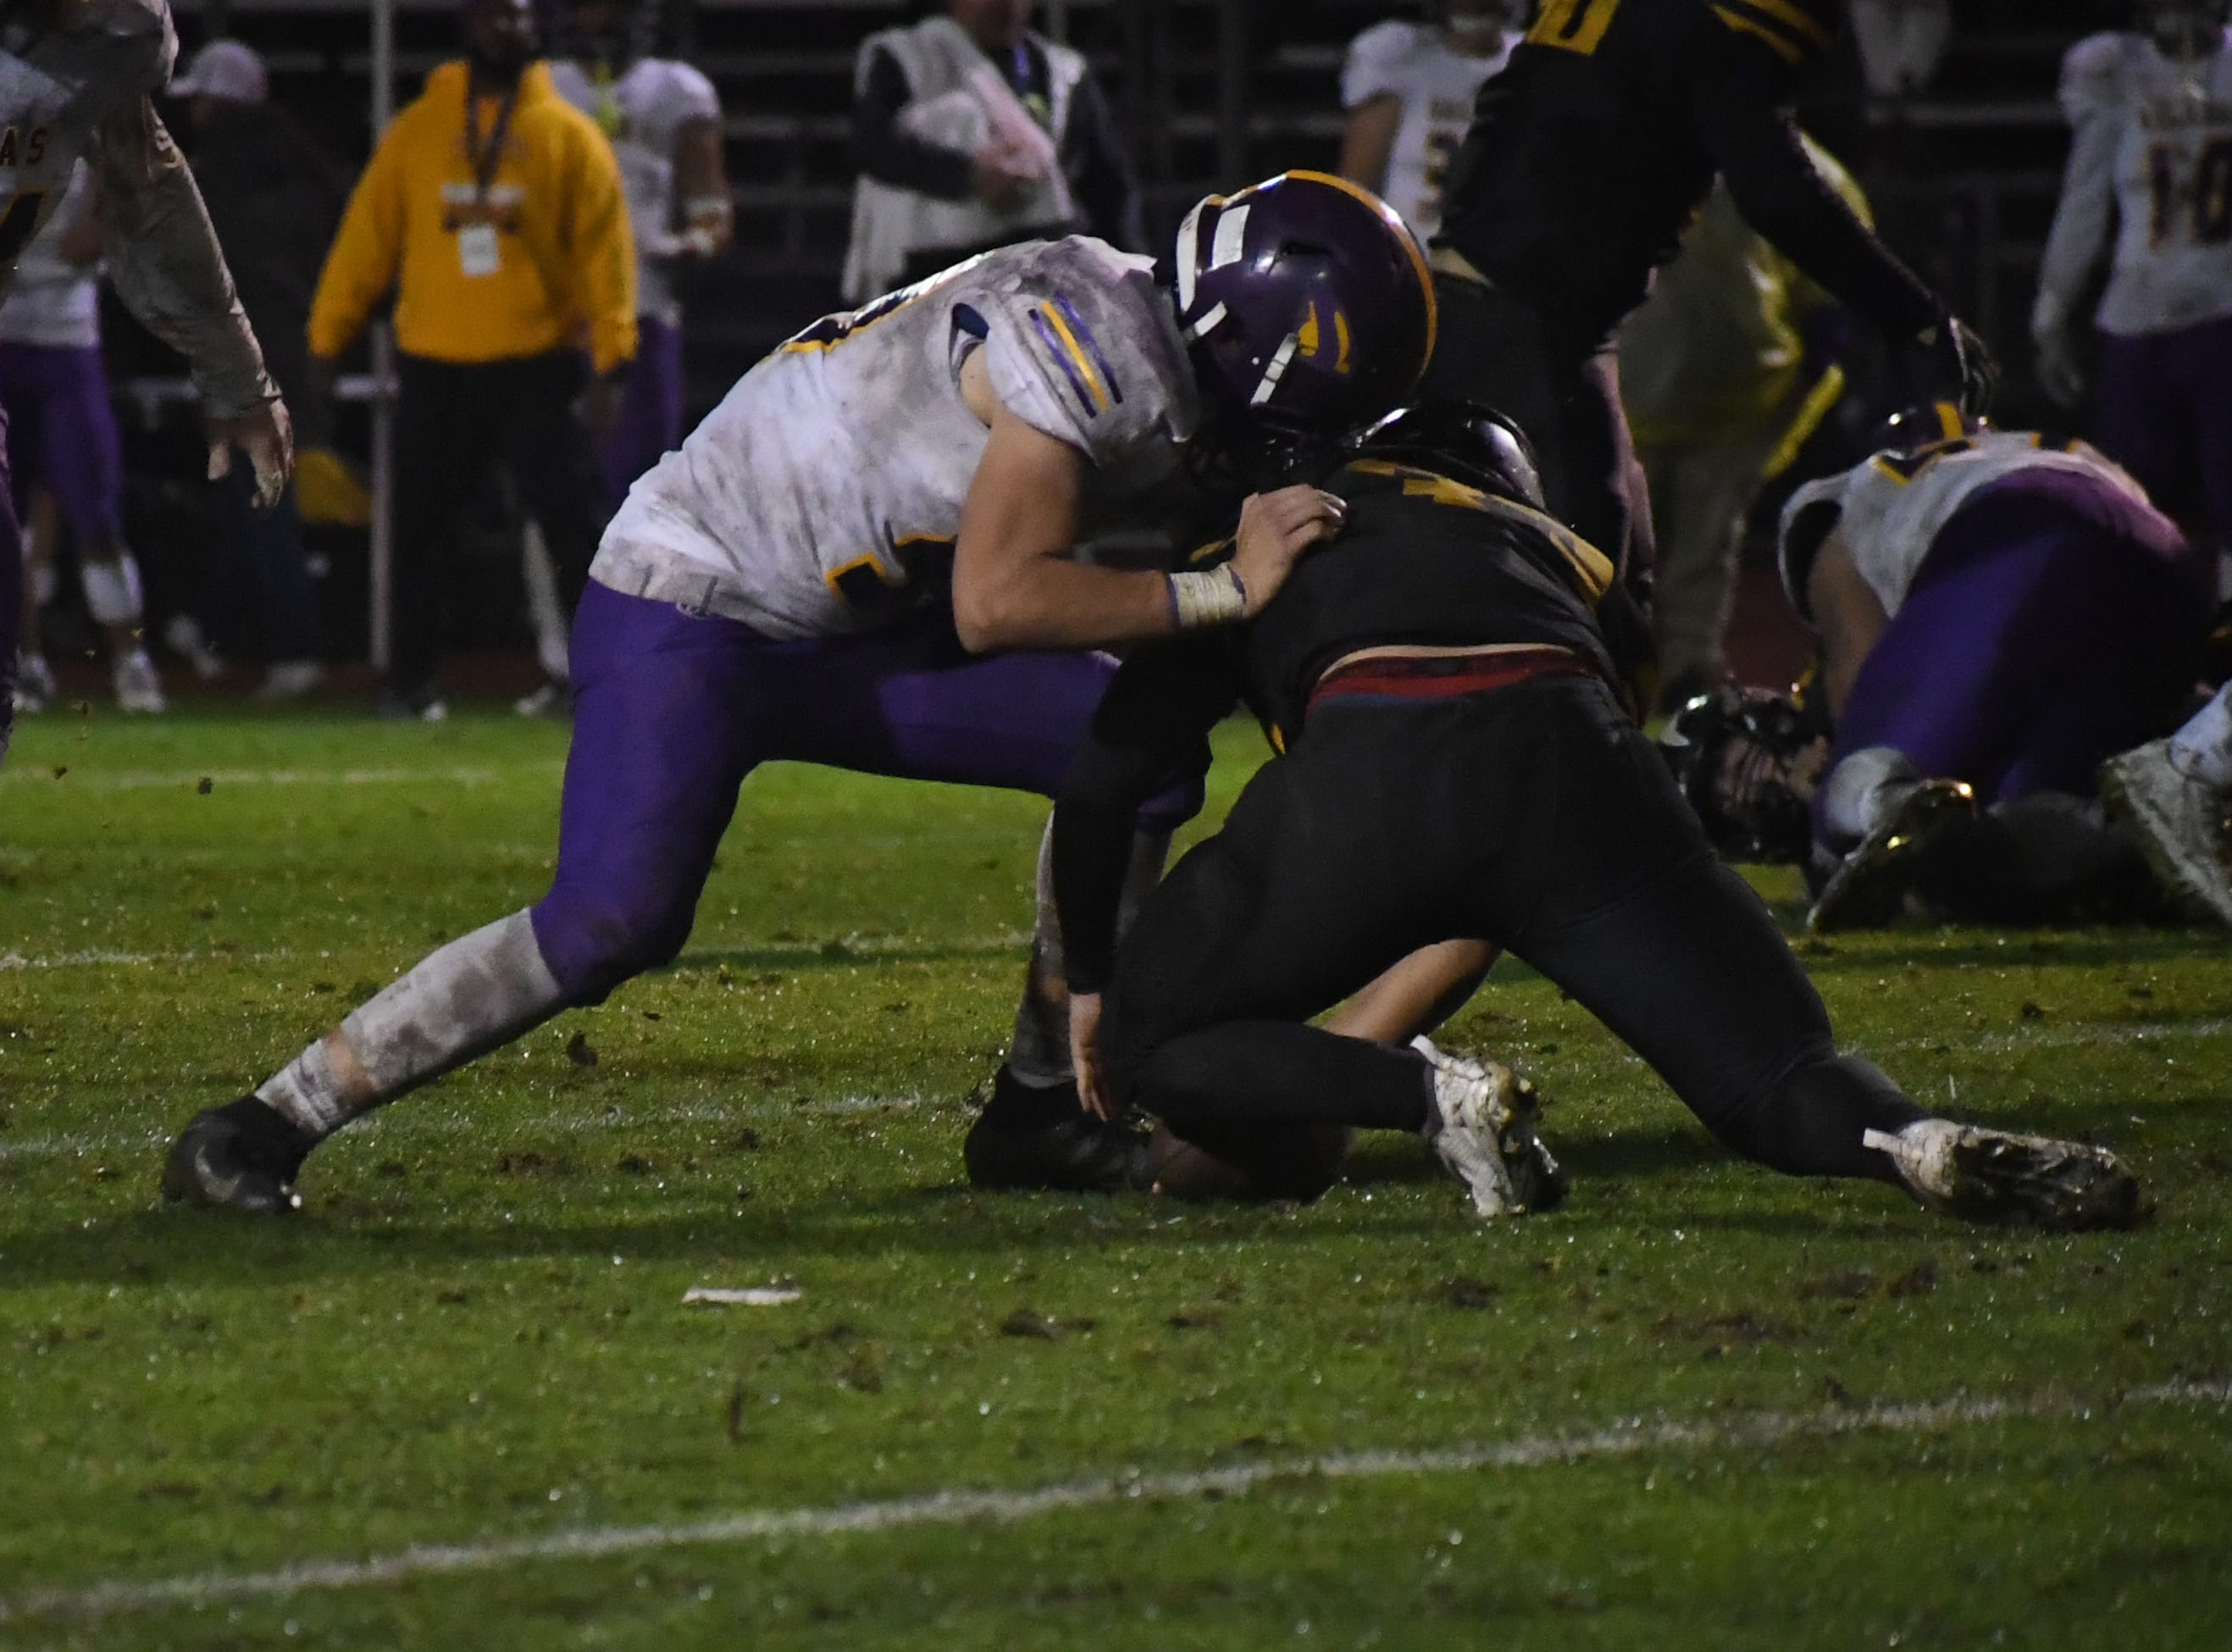 Linebacker Kyle Lawson (99) wrestles for a fumble.